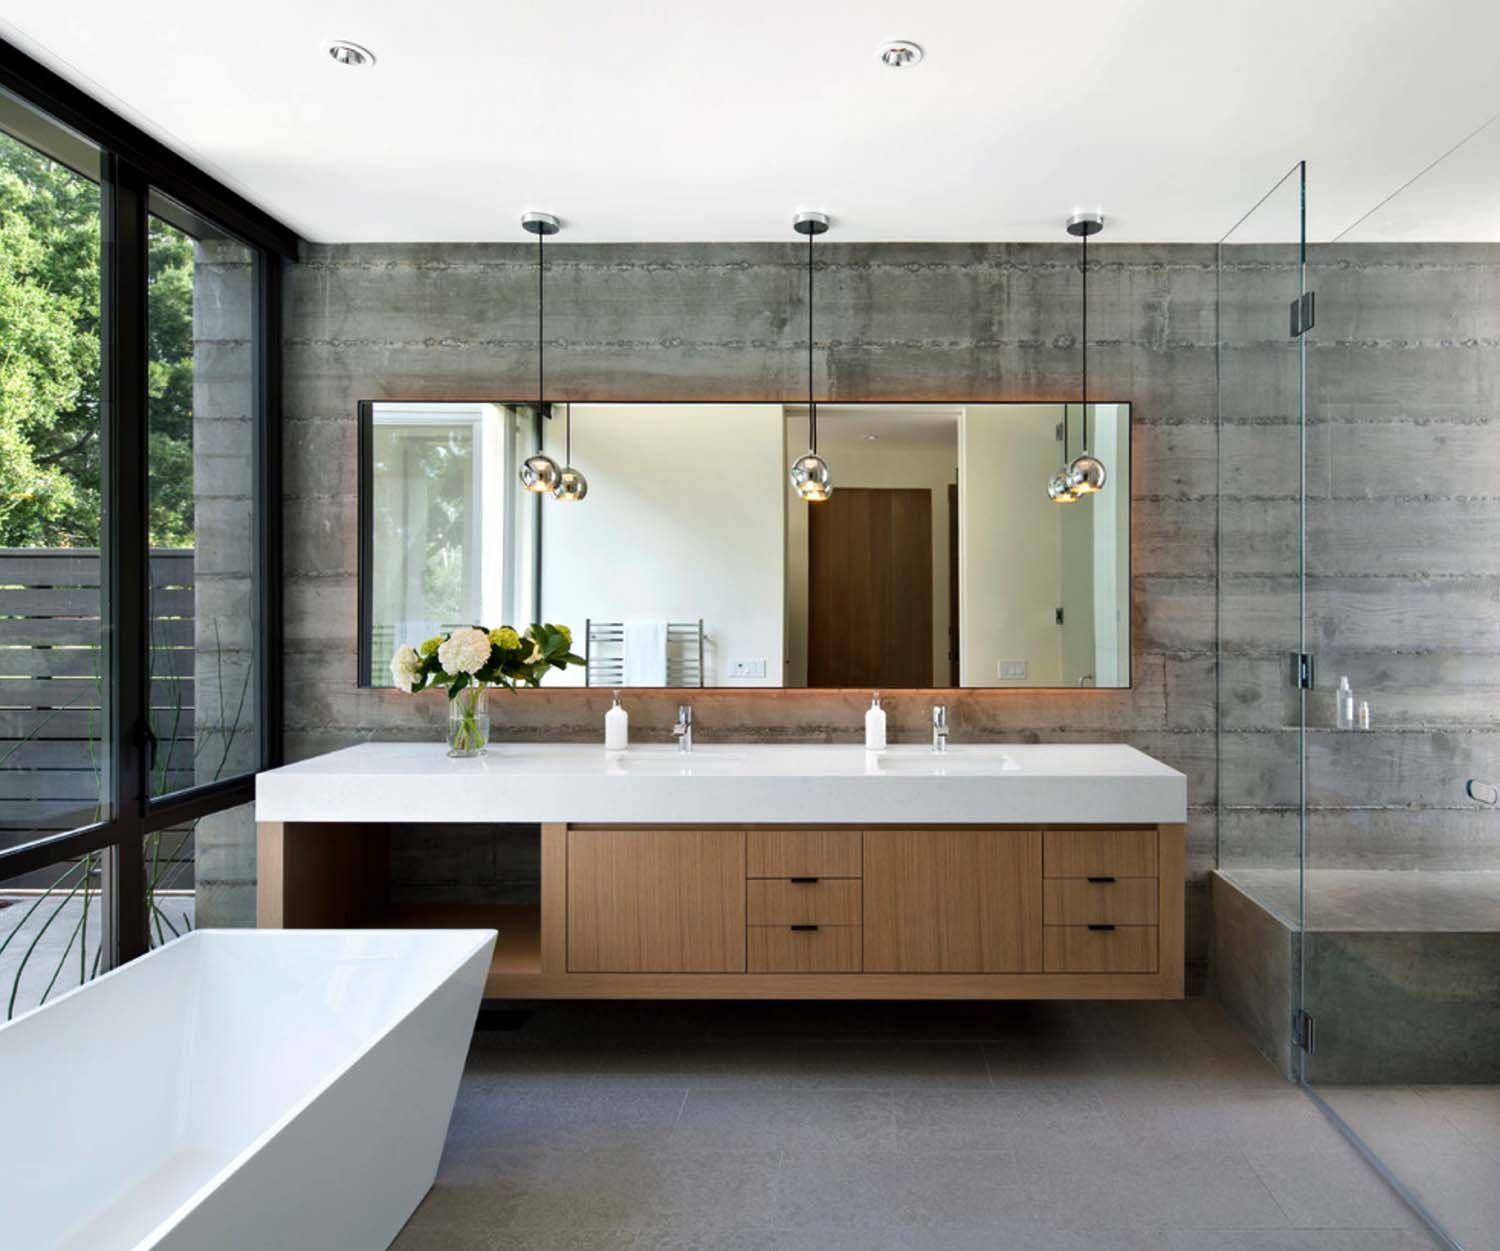 Incredible Looking California Dwelling Filled With Natural Light Modern House Design Bathroom Interior Design Bathroom Interior